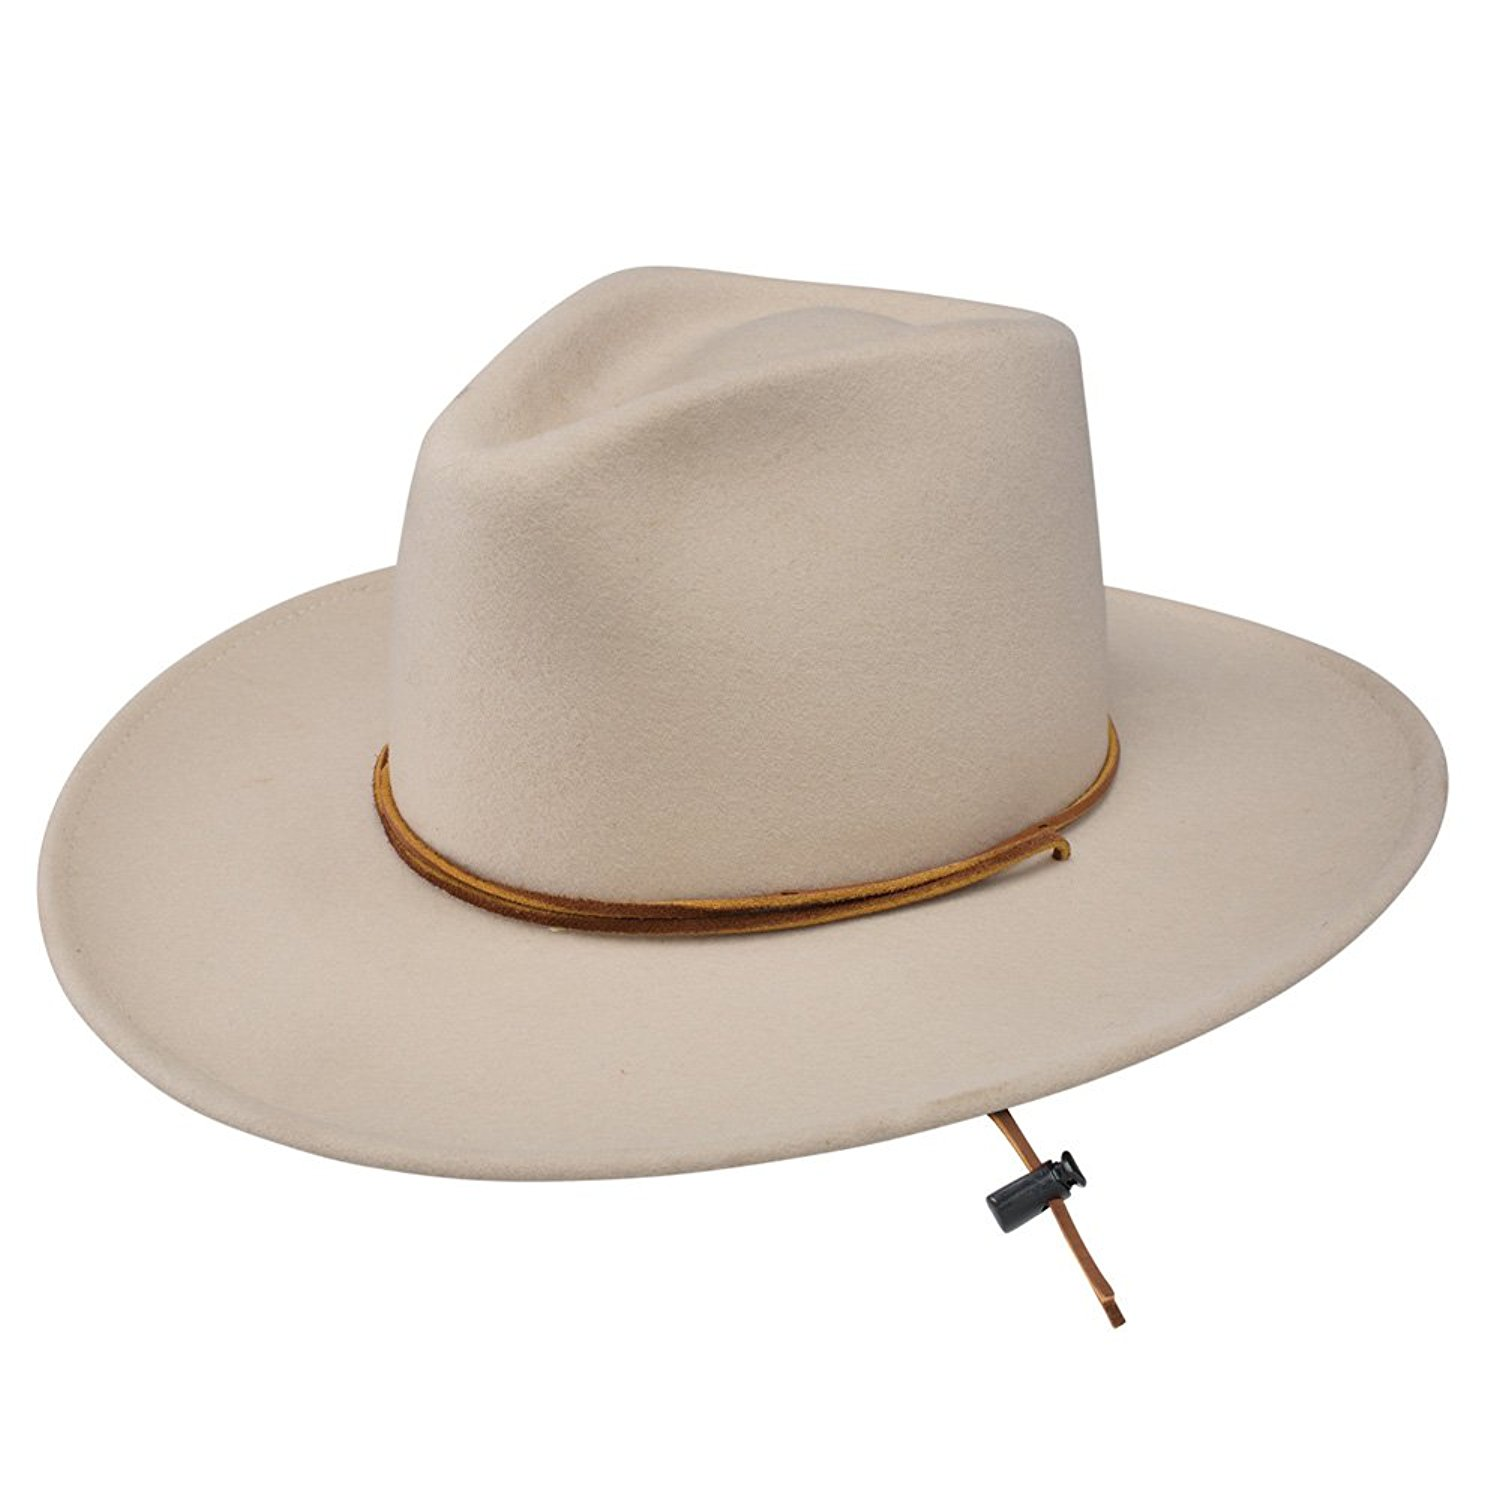 85c37493c Cheap Dobbs Hats, find Dobbs Hats deals on line at Alibaba.com